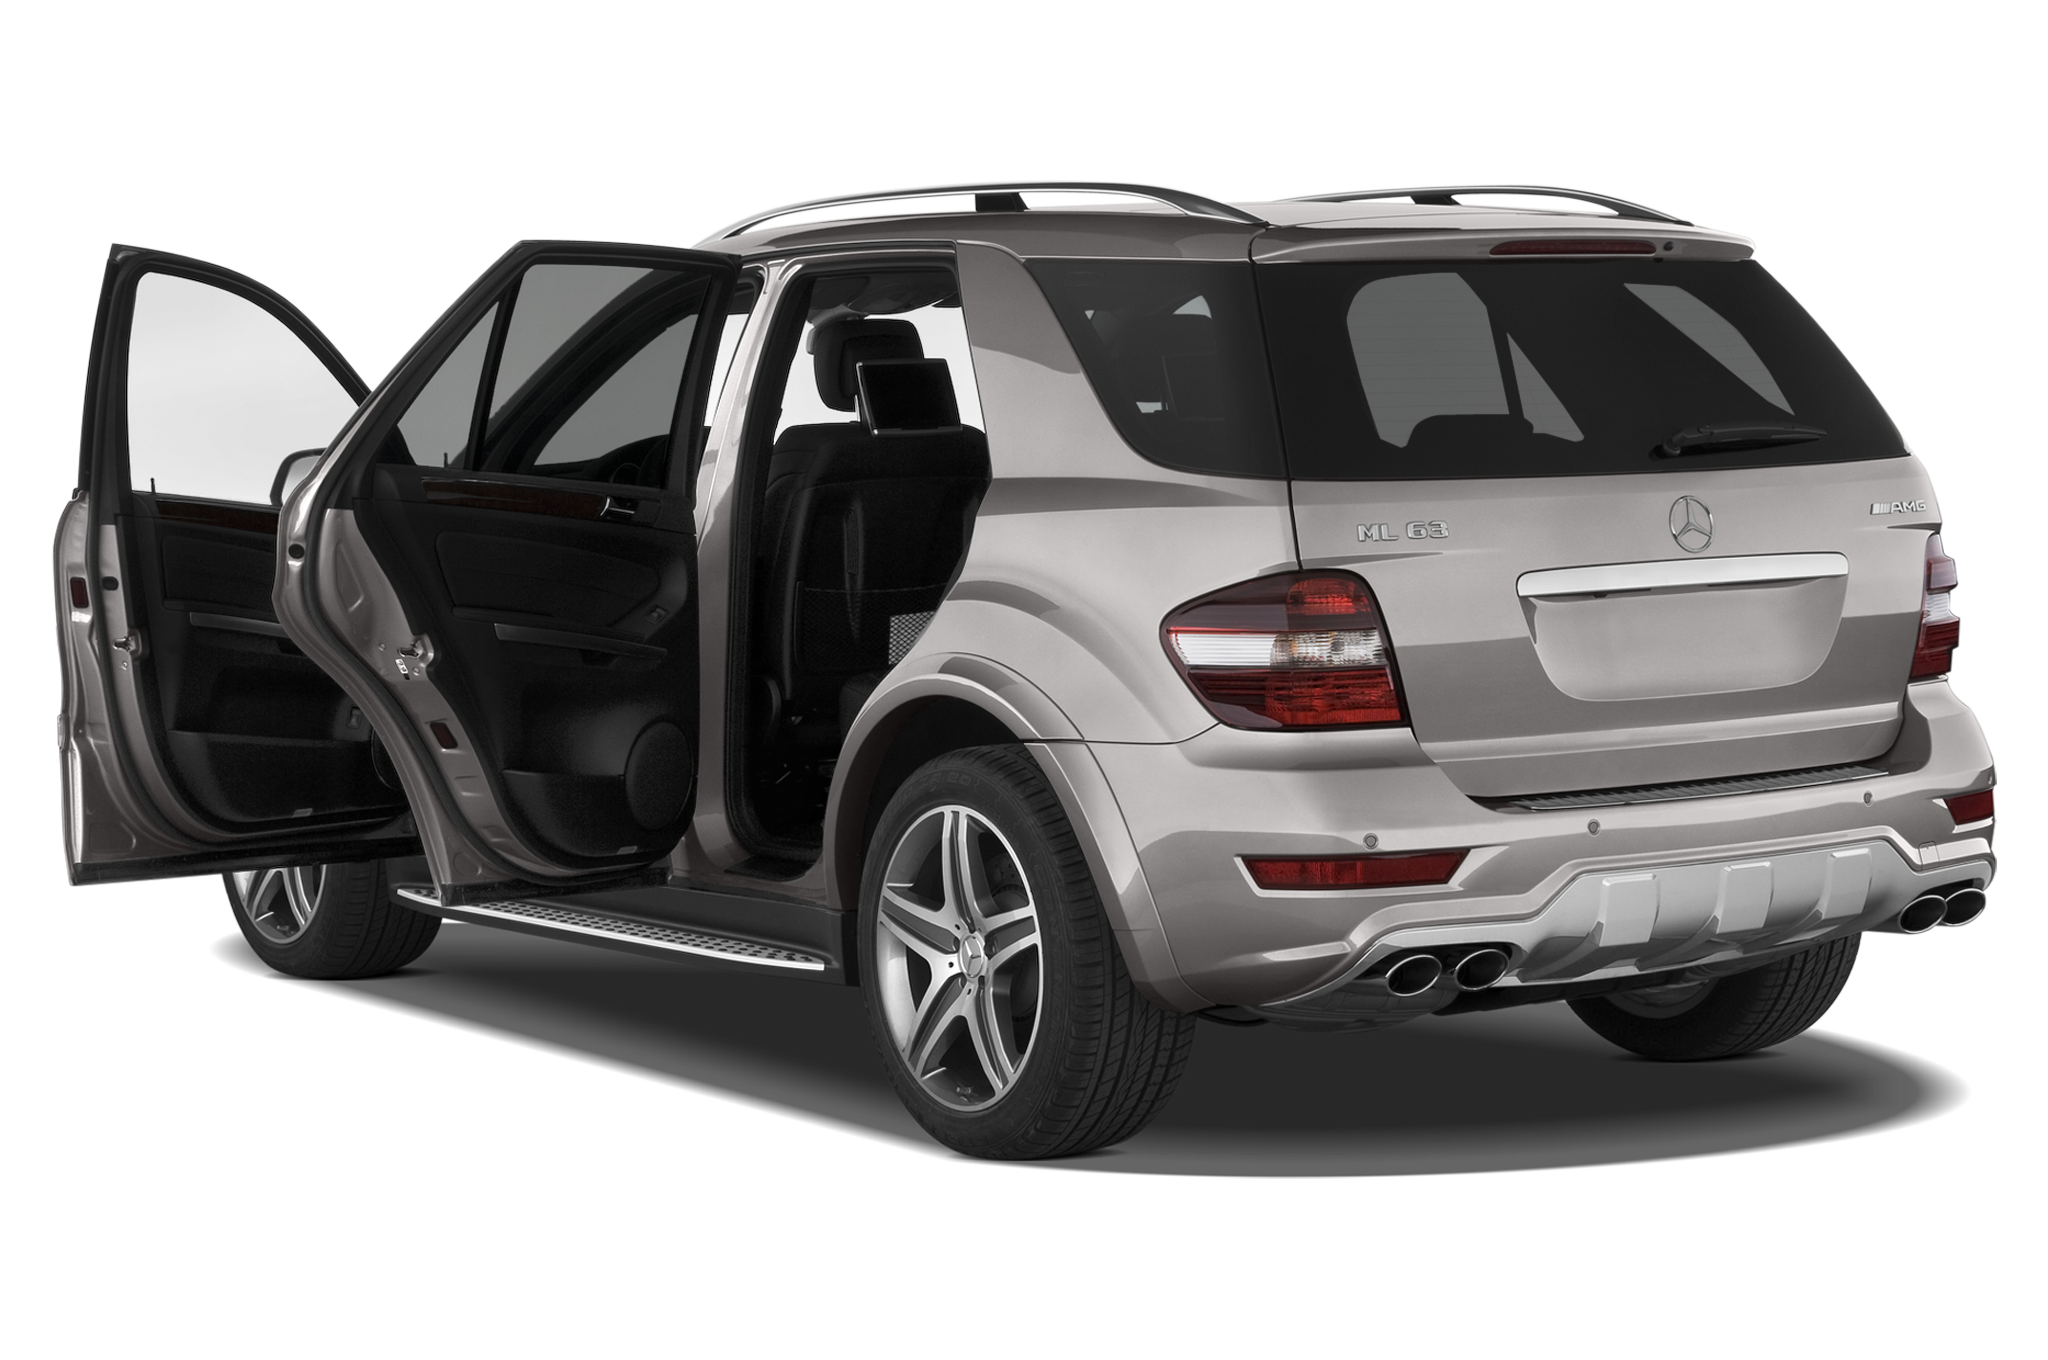 2011 mercedes benz ml63 amg editor 39 s notebook for Mercedes benz 2011